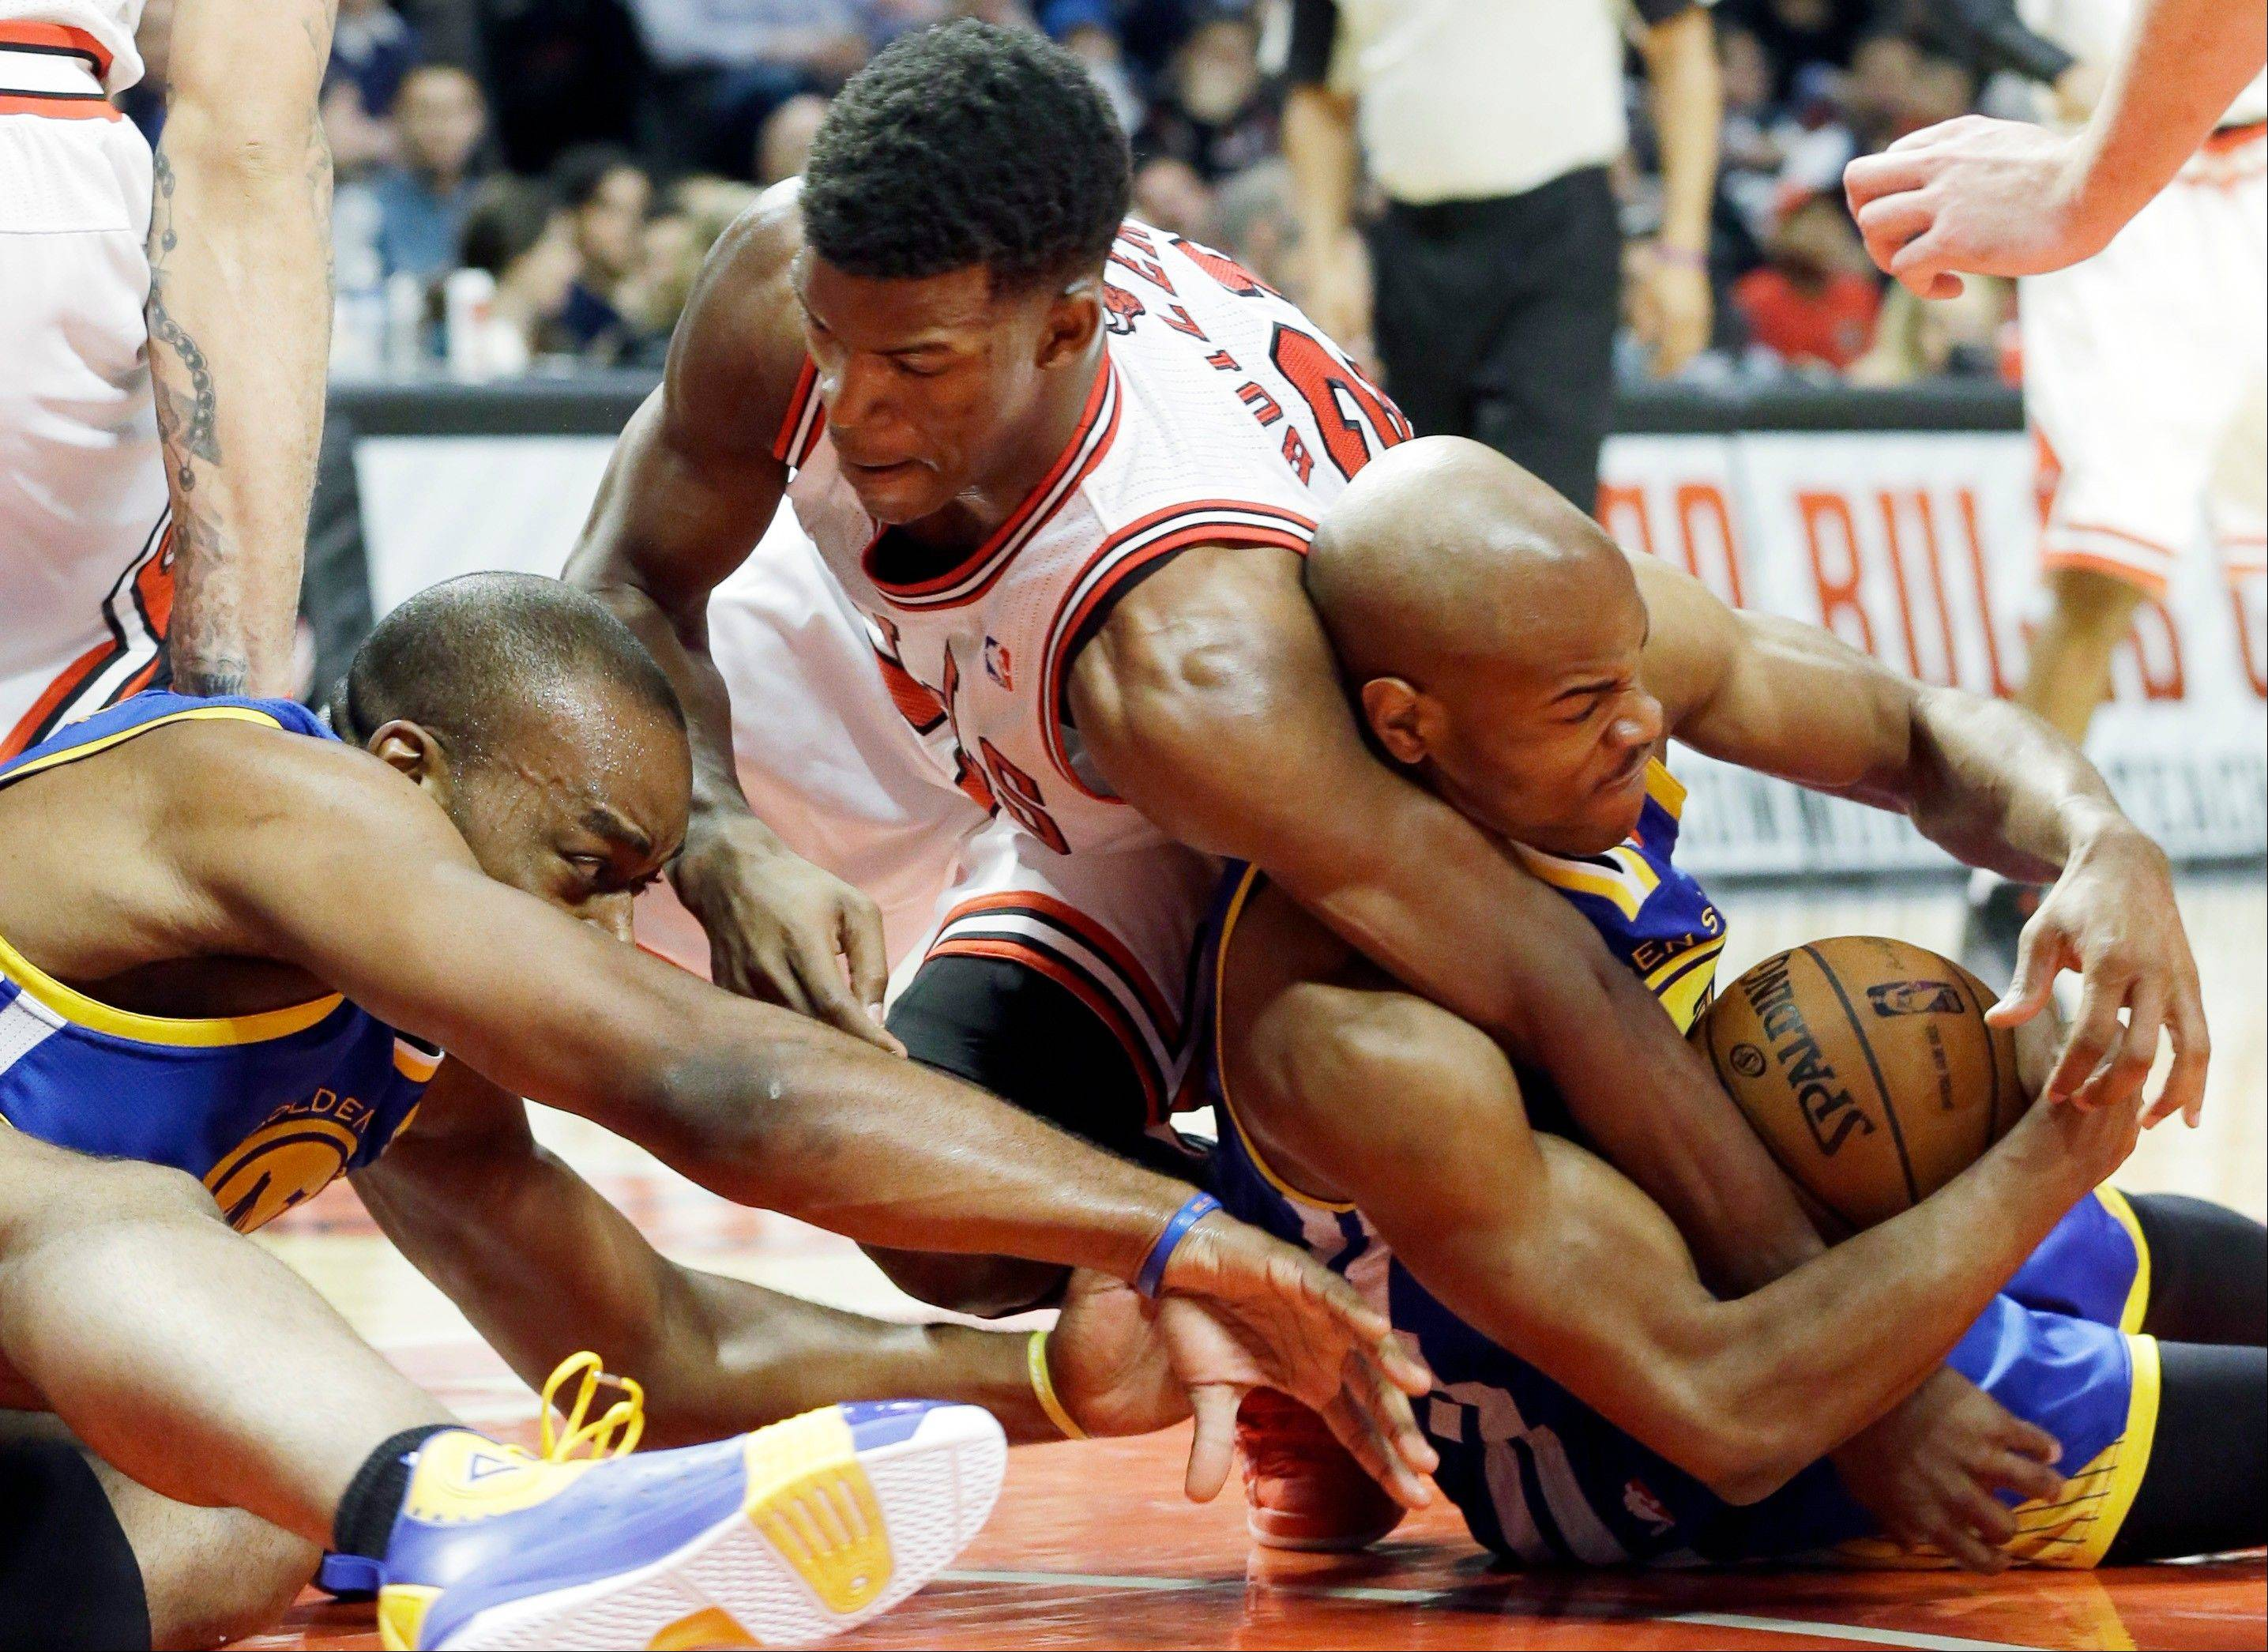 Jimmy Butler, center, battles for a loose ball with Golden State Warriors forward Carl Landry, left, and guard Jarrett Jack during the second half of an NBA basketball game in Chicago on Friday, Jan. 25, 2013. The Bulls won 103-87.